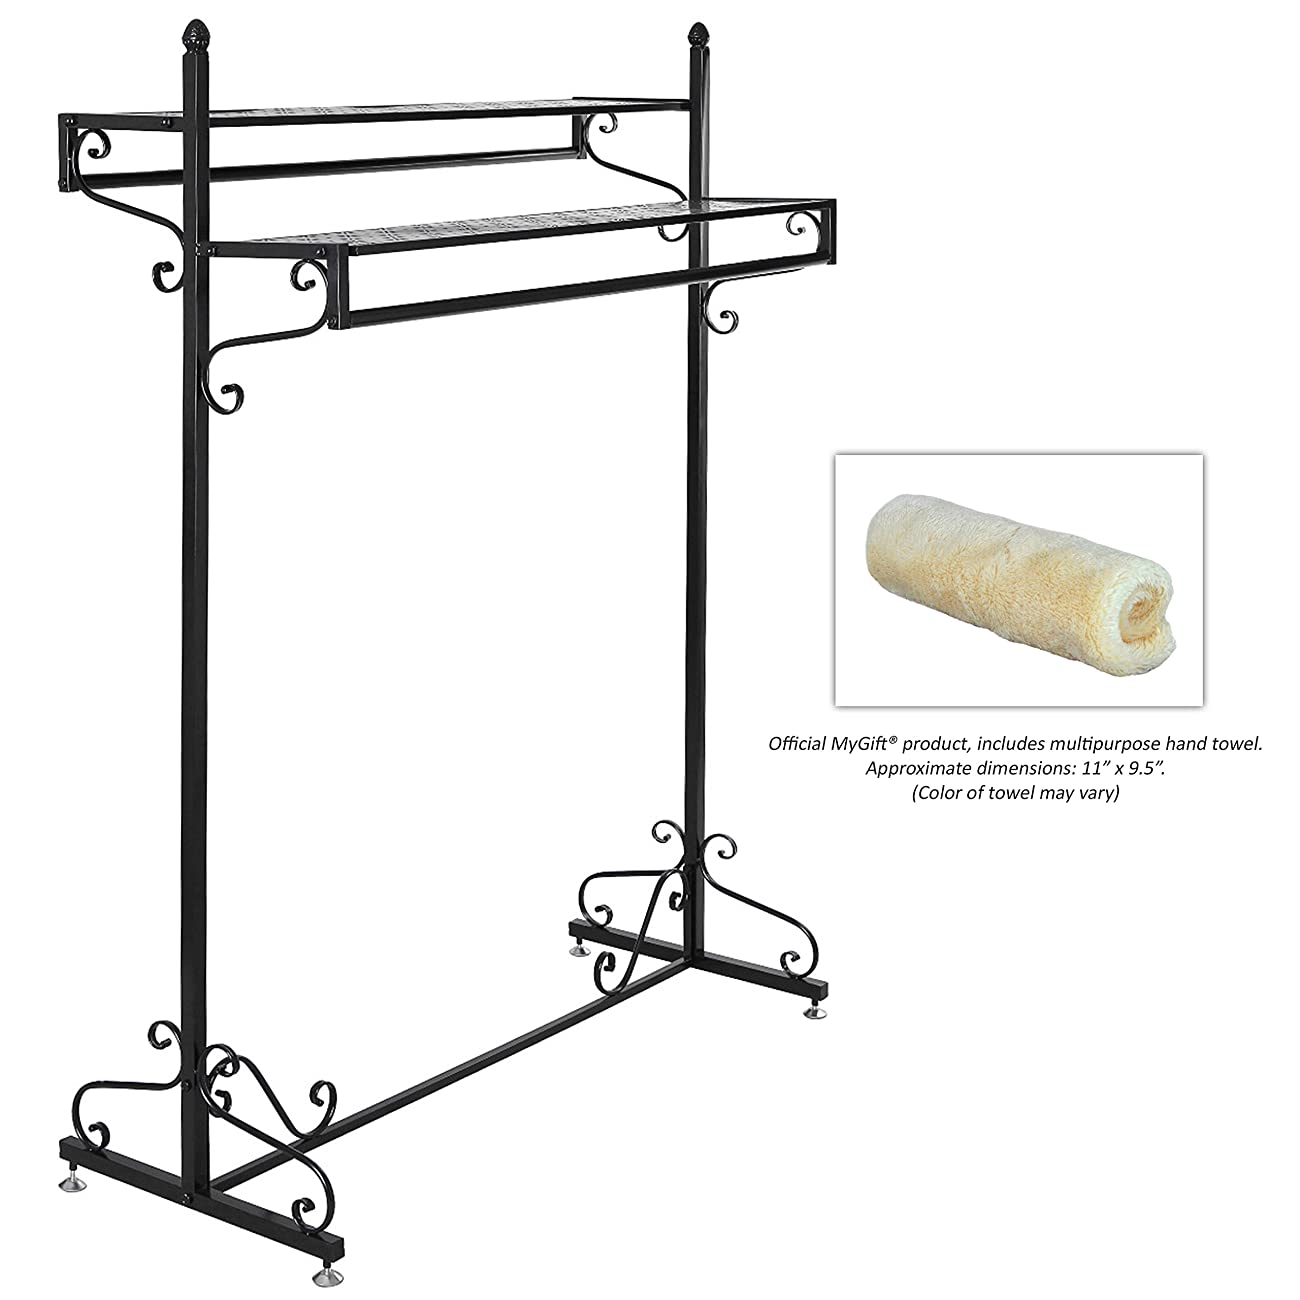 Victorian Style Boutique Clothes / Garment Display Rack w/ Dual Hangrail & Cargo Shelves, Black - MyGift® 3